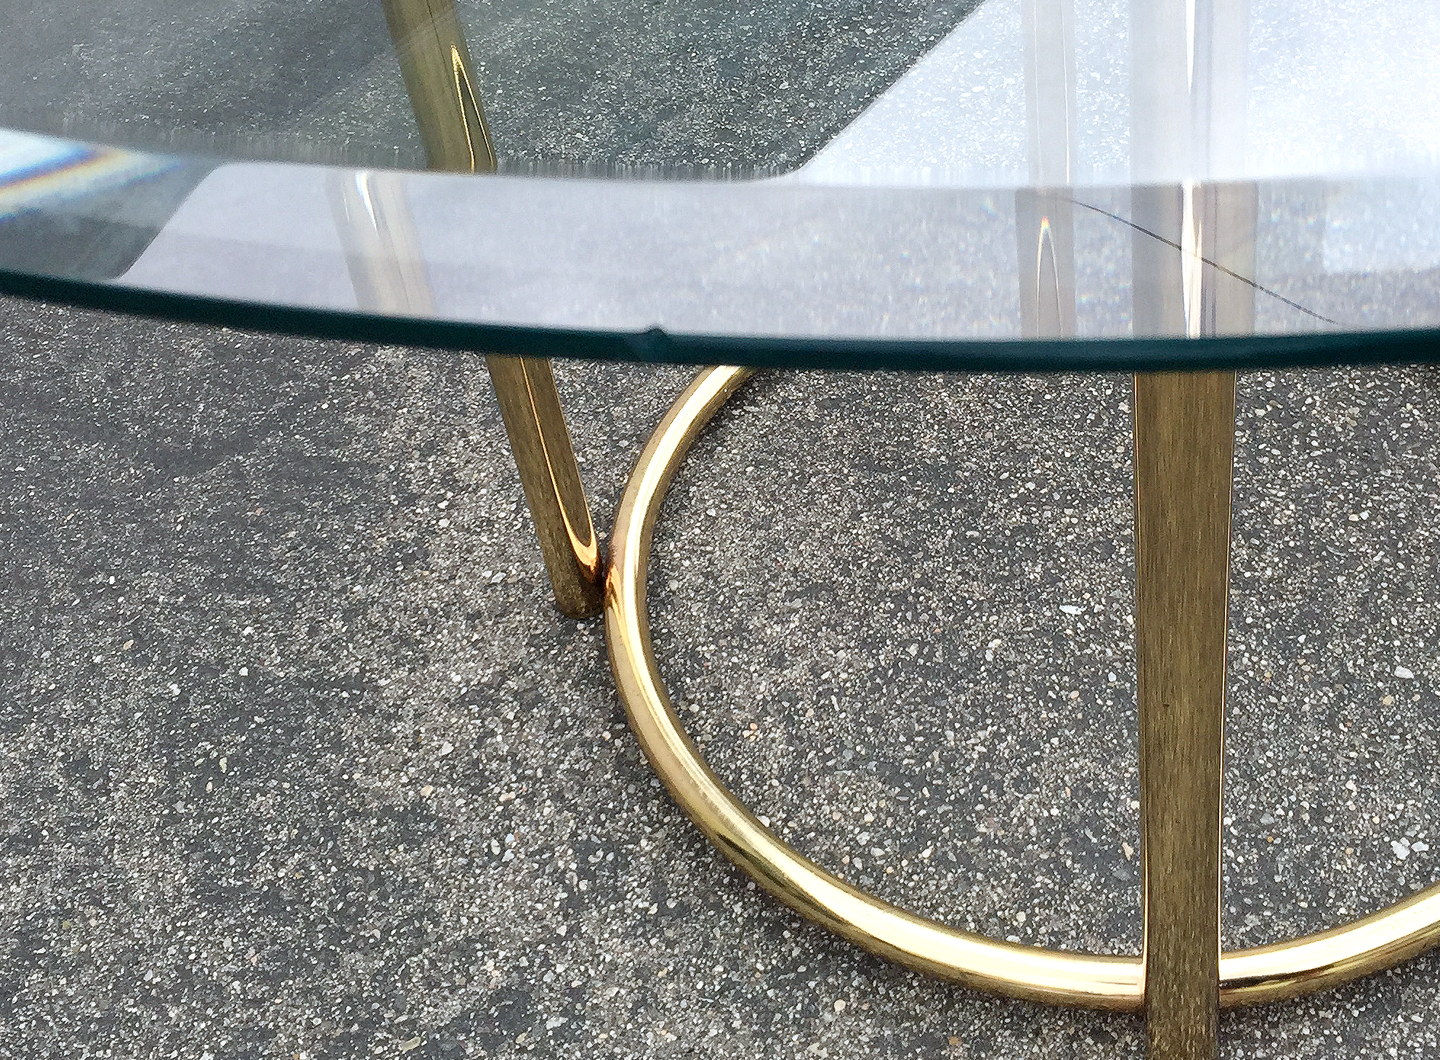 Vintage Brass Base Dining Table Chairish : bfac8364 10bb 4908 82eb 1c2ddebb1242aspectfitampwidth640ampheight640 from www.chairish.com size 640 x 640 jpeg 101kB